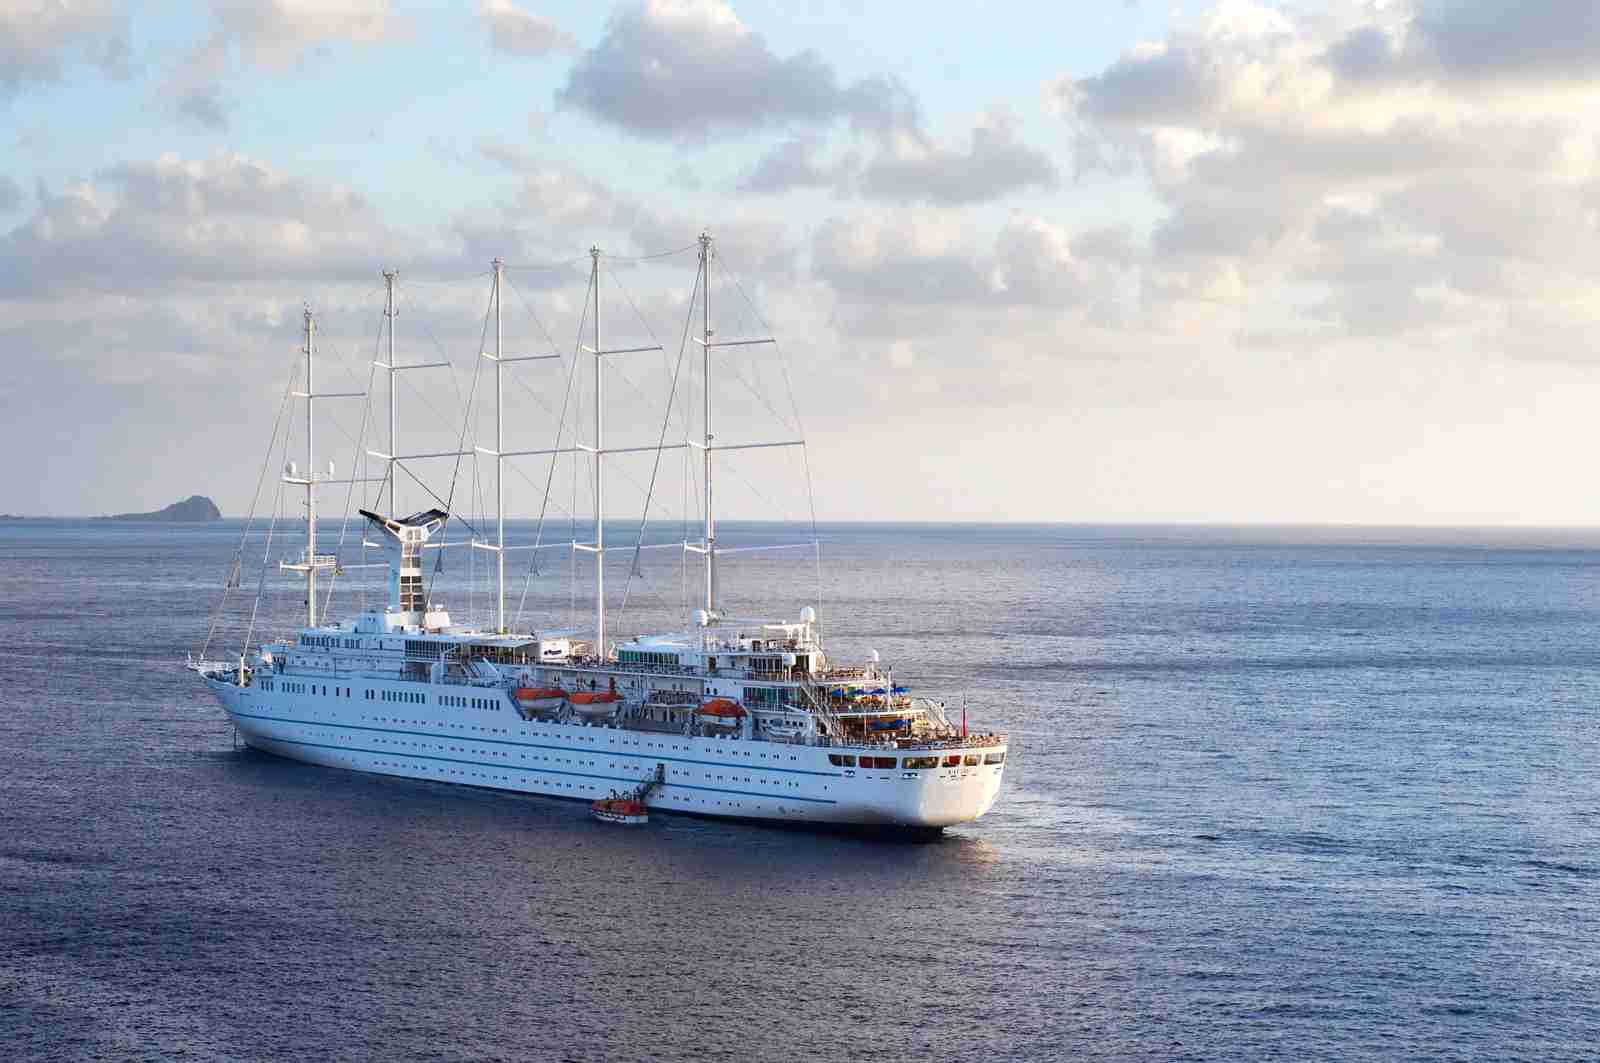 A Windstar cruise ship near Dominica. (Photo via Getty Images)